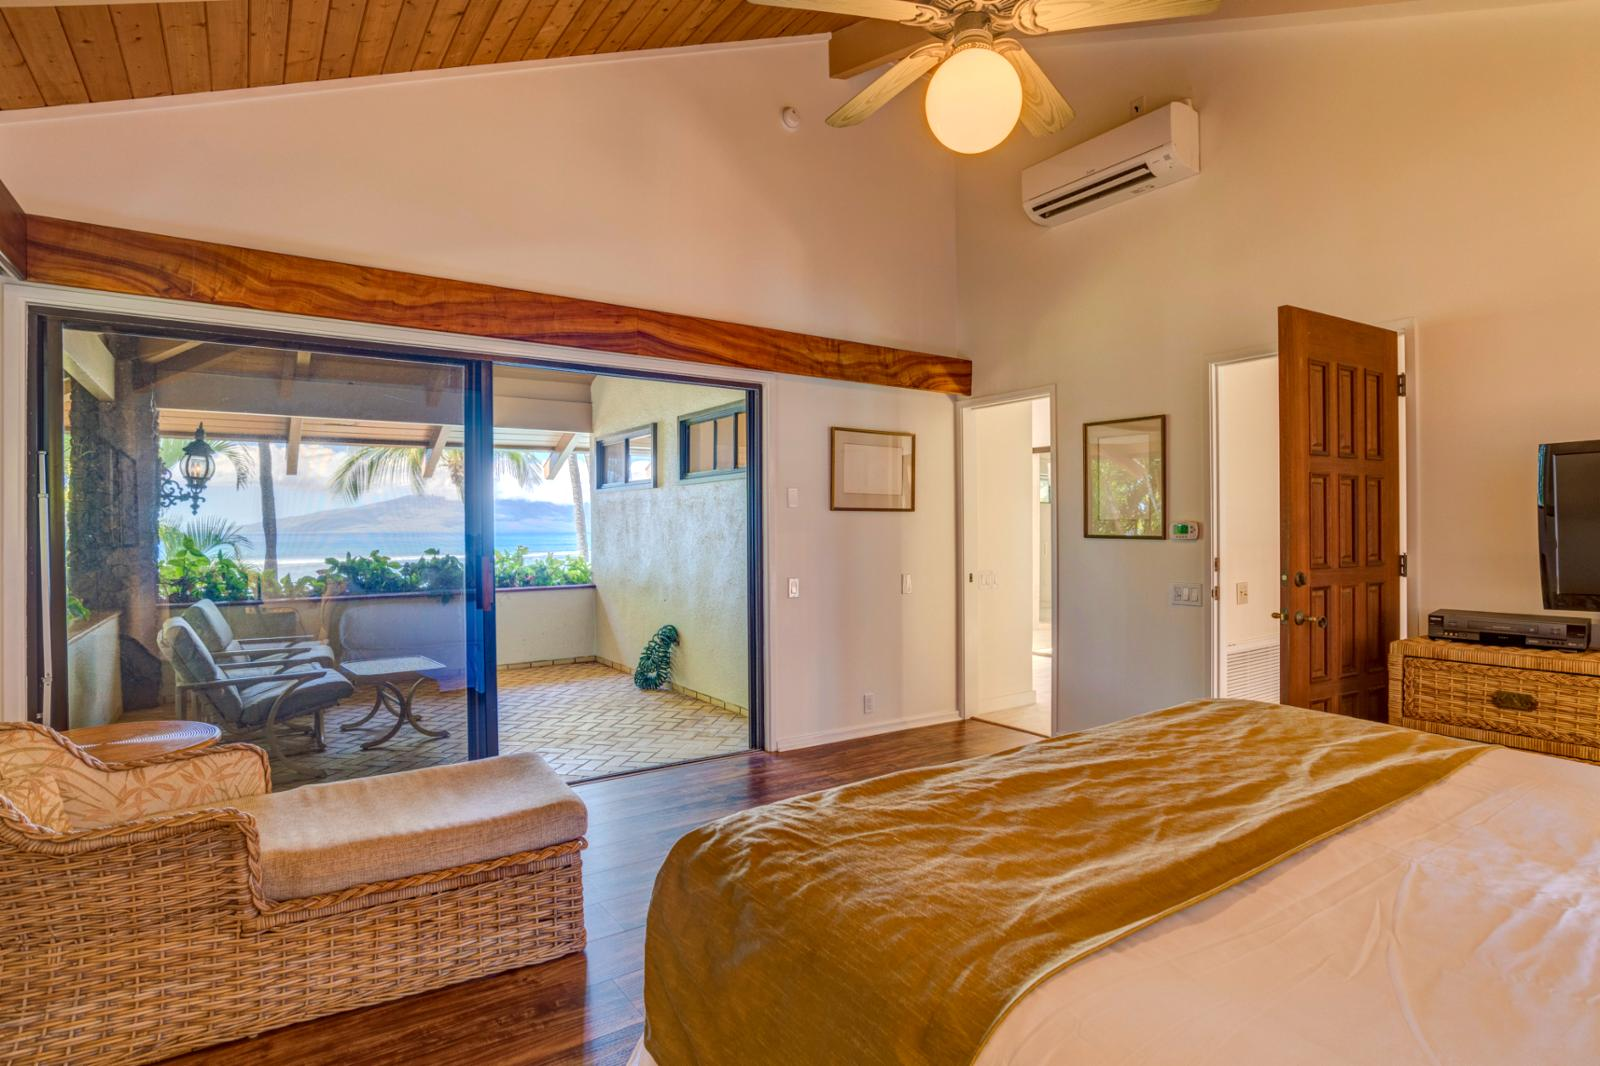 Entry to your private lanai and bathroom suite